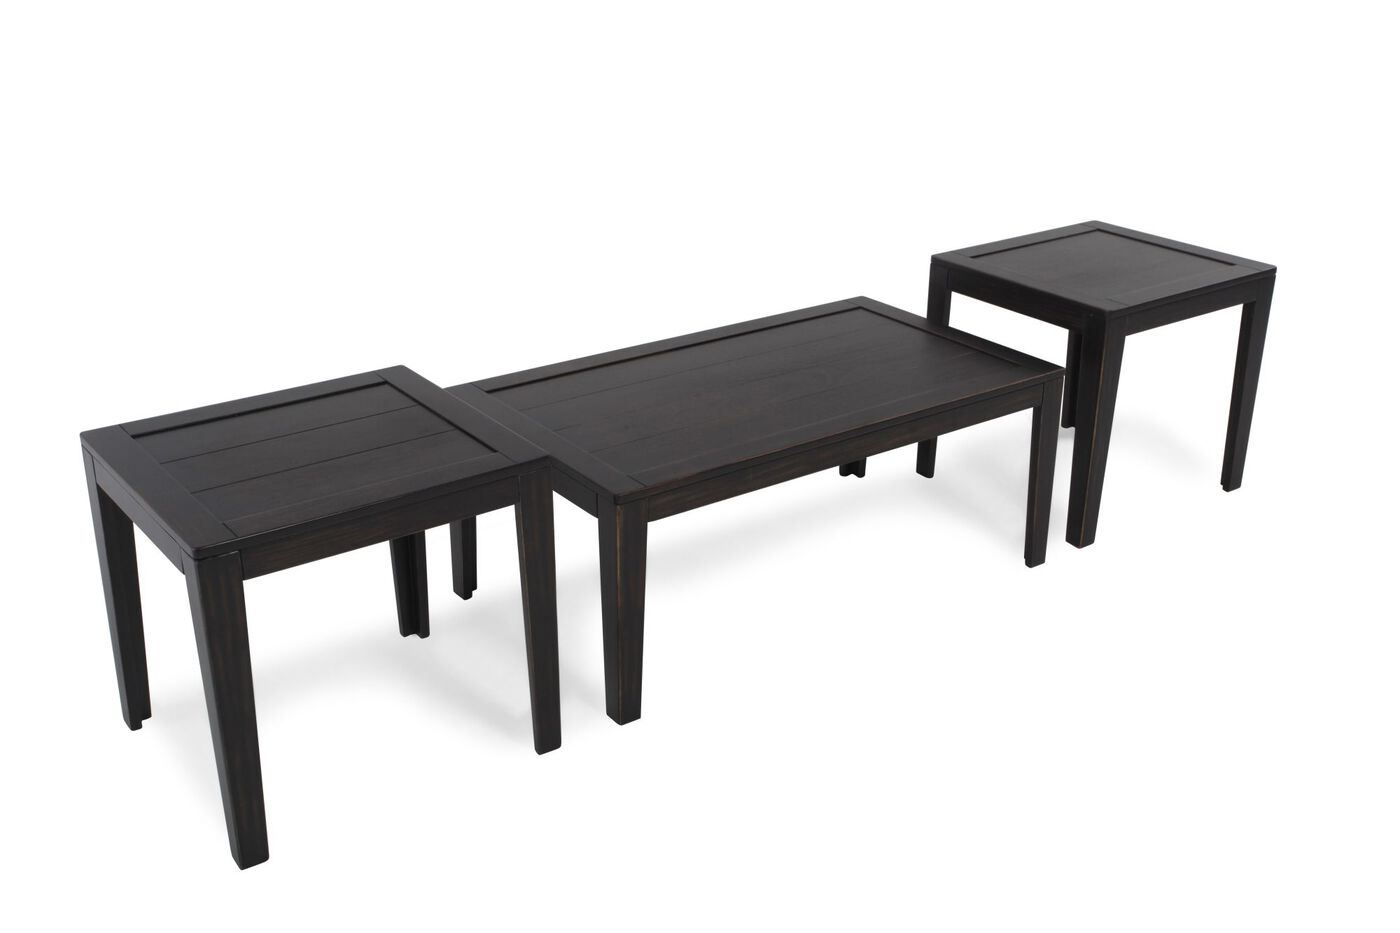 Three Piece Contemporary Occasional Table Set in Dark  : ASH T22704713 1 from www.mathisbrothers.com size 1400 x 933 jpeg 44kB